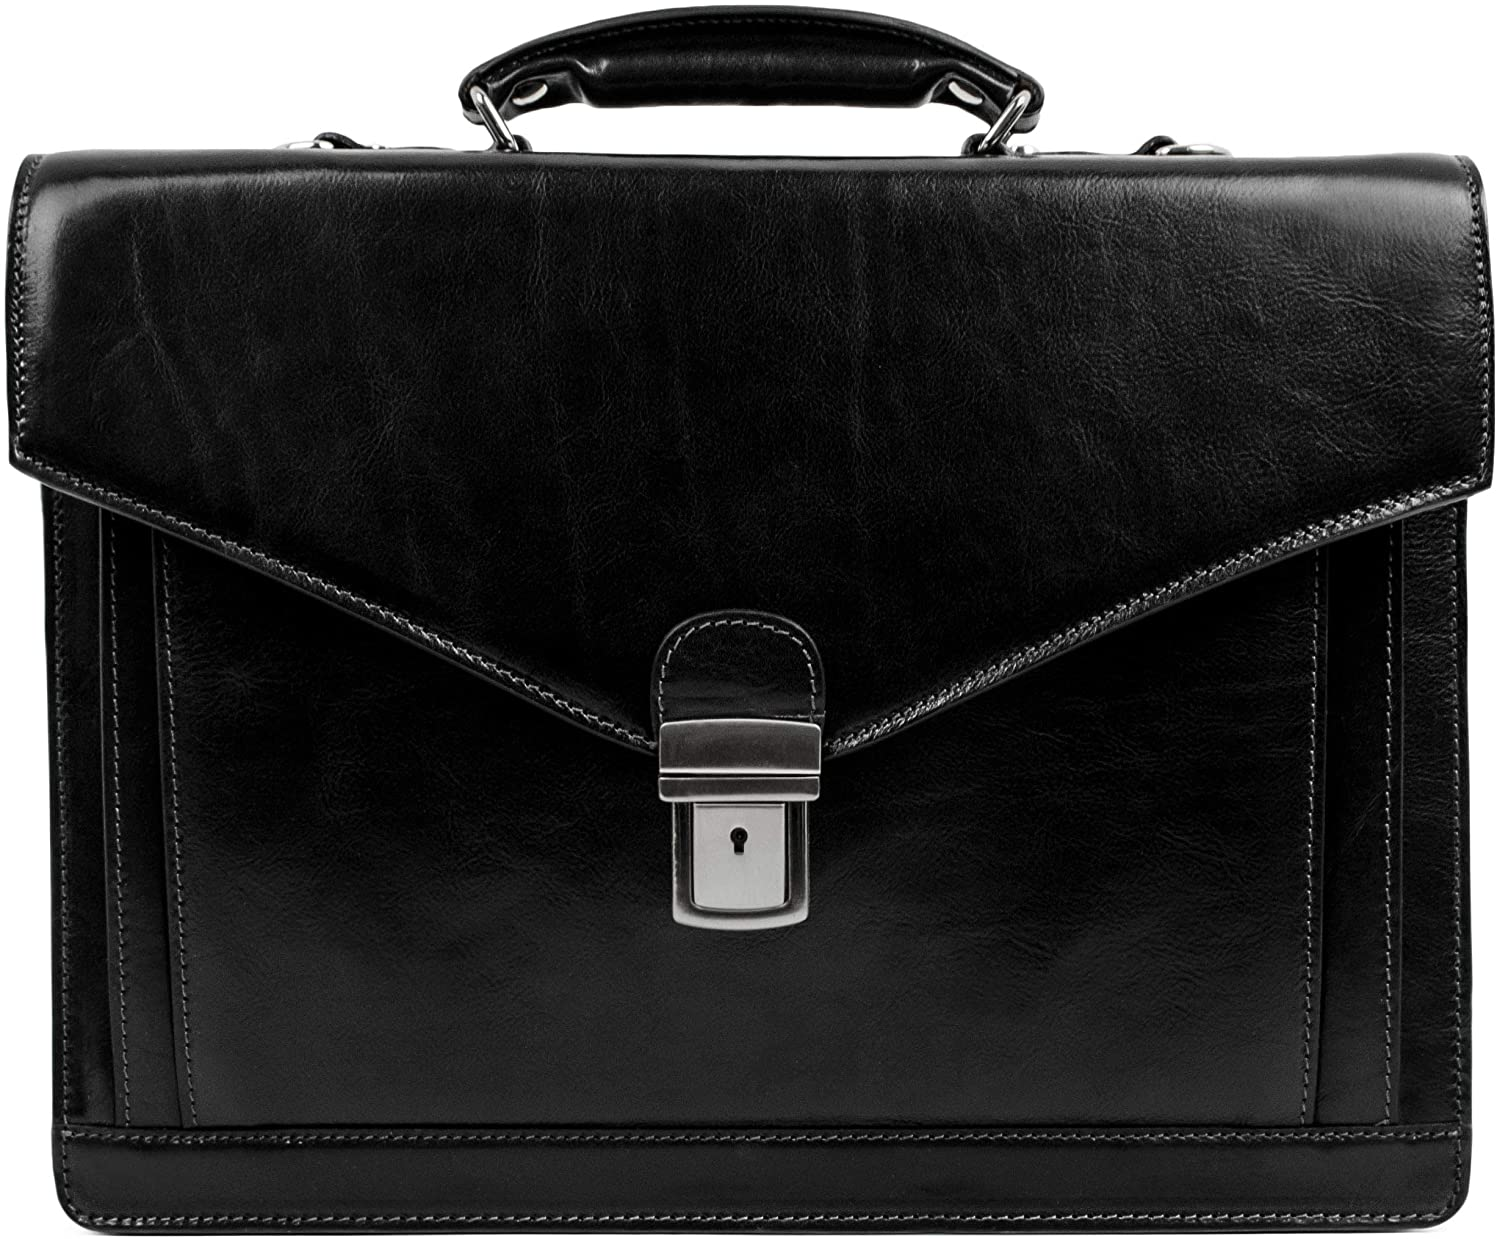 Leather Briefcase for Men Handmade Italian Business Bag Classy Black Attache Case - Time Resistance